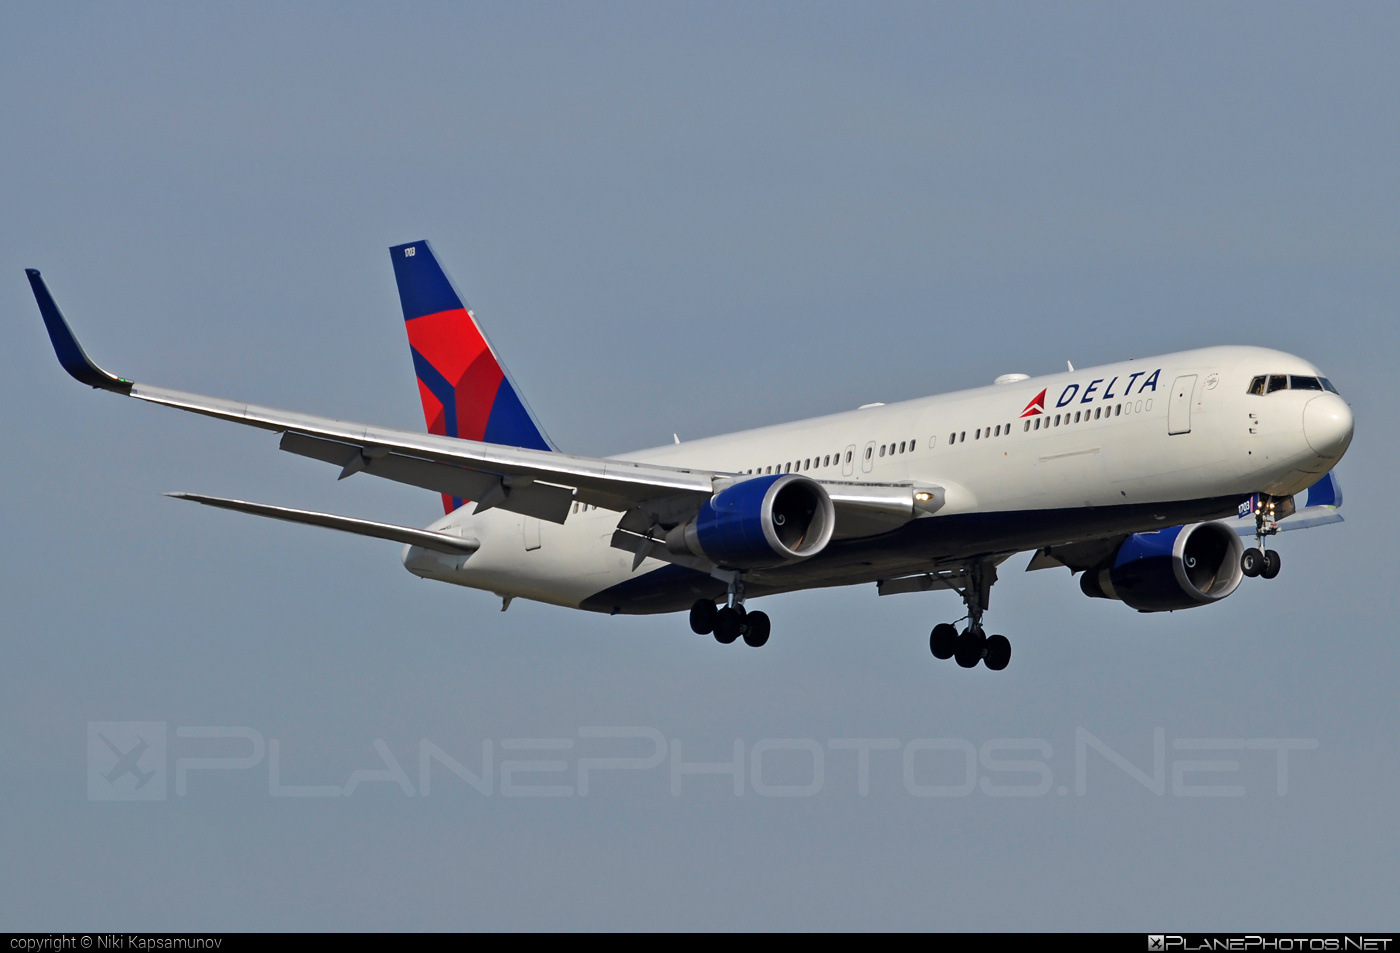 Boeing 767-300ER - N173DZ operated by Delta Air Lines #b767 #b767er #boeing #boeing767 #deltaairlines